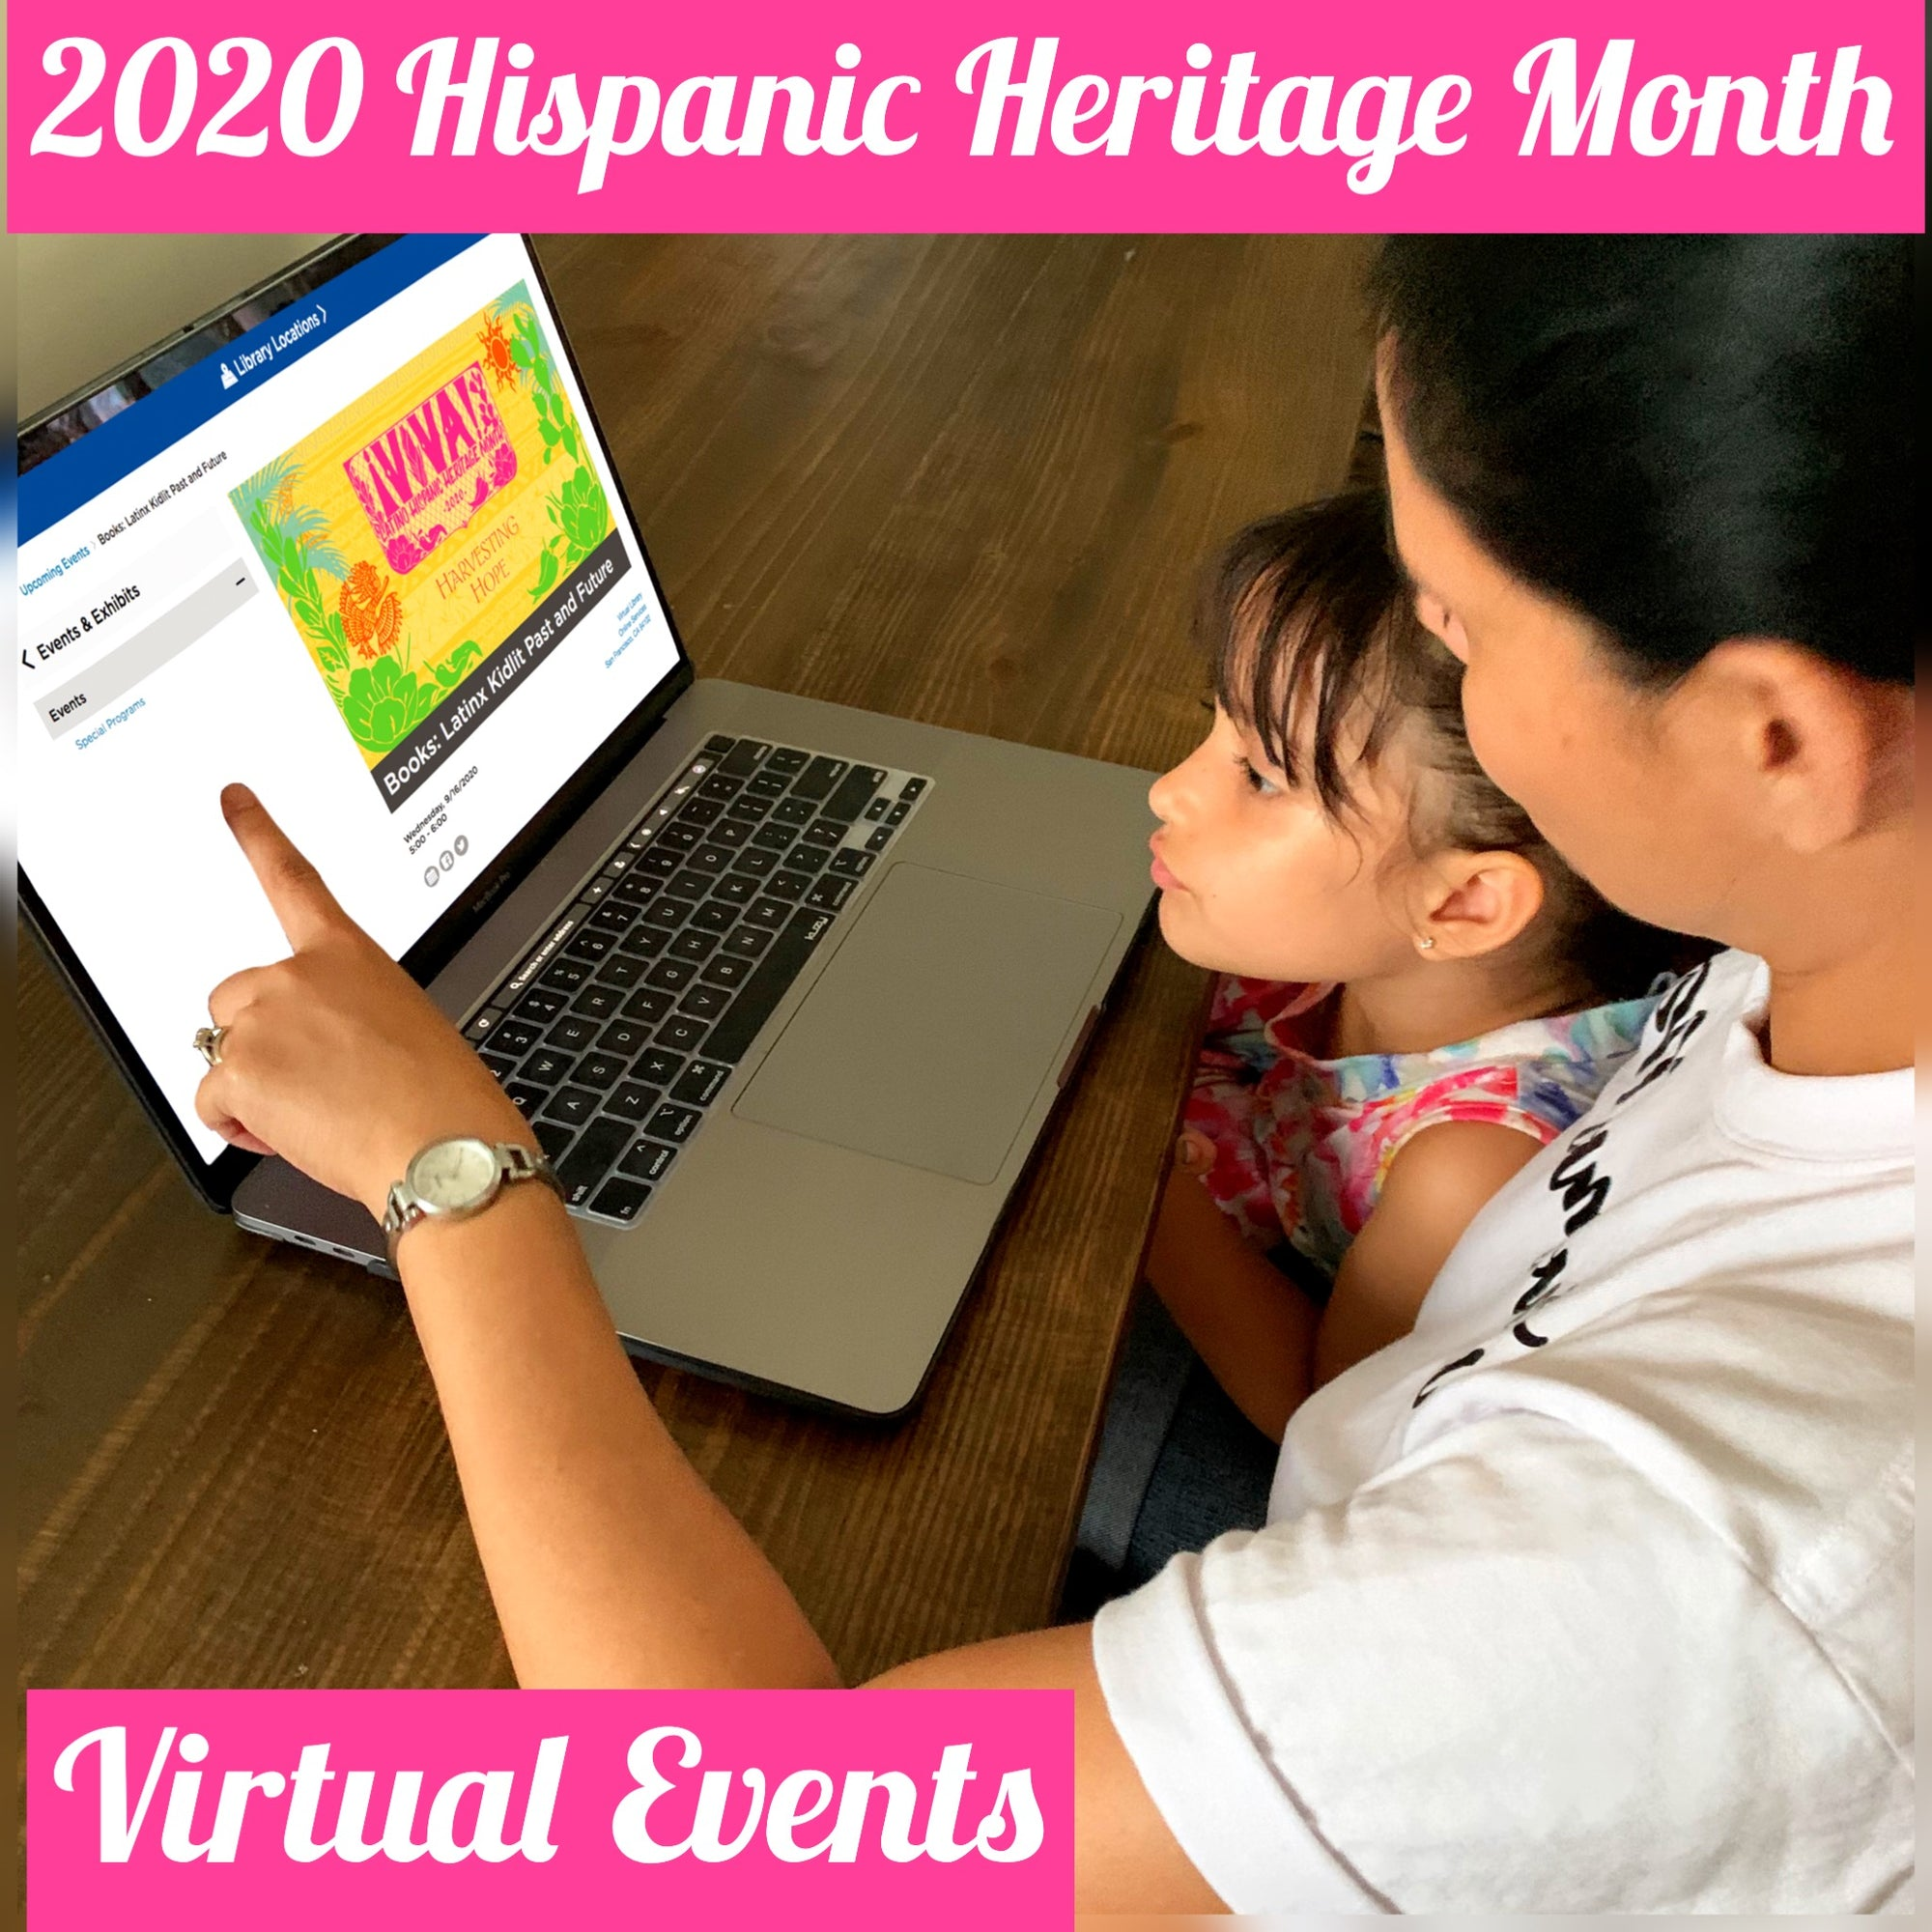 2020 Virtual Events to Celebrate Hispanic Heritage Month